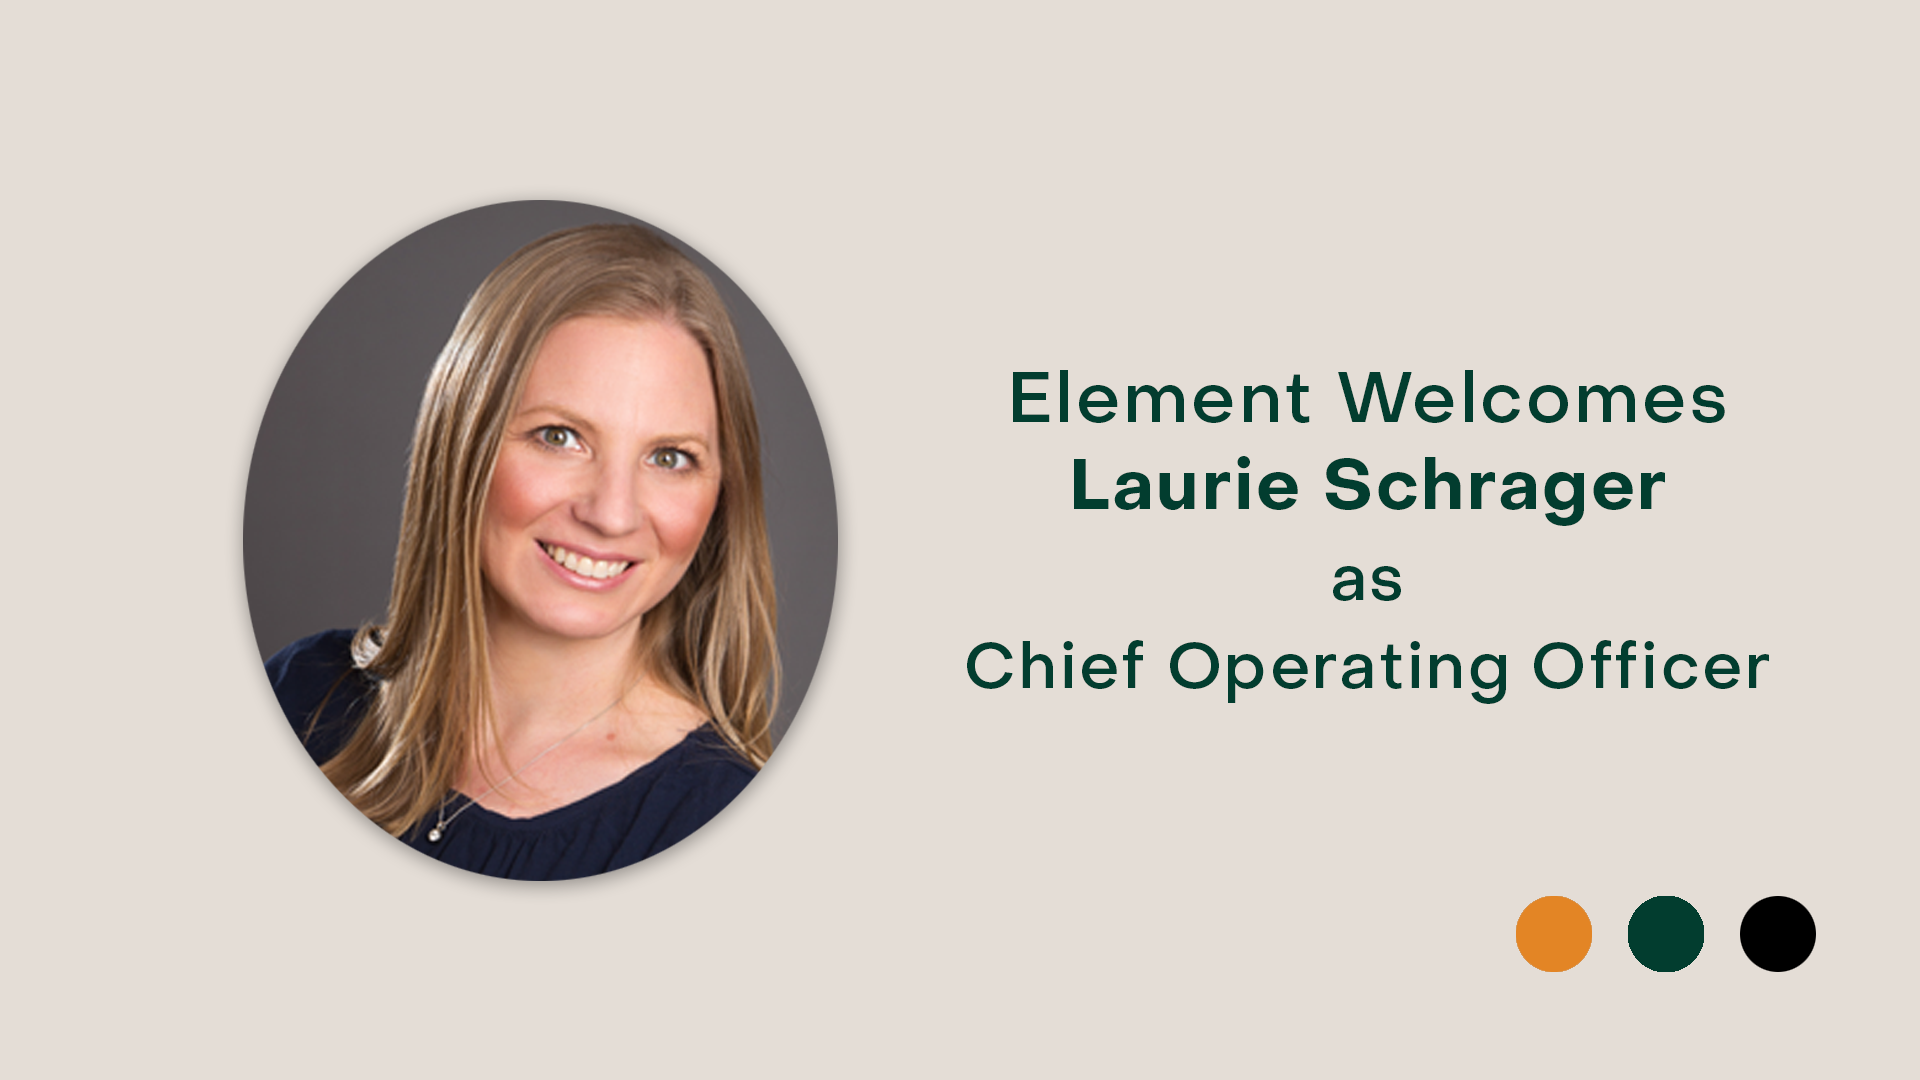 Introducing Laurie Schrager as Chief Operating Officer